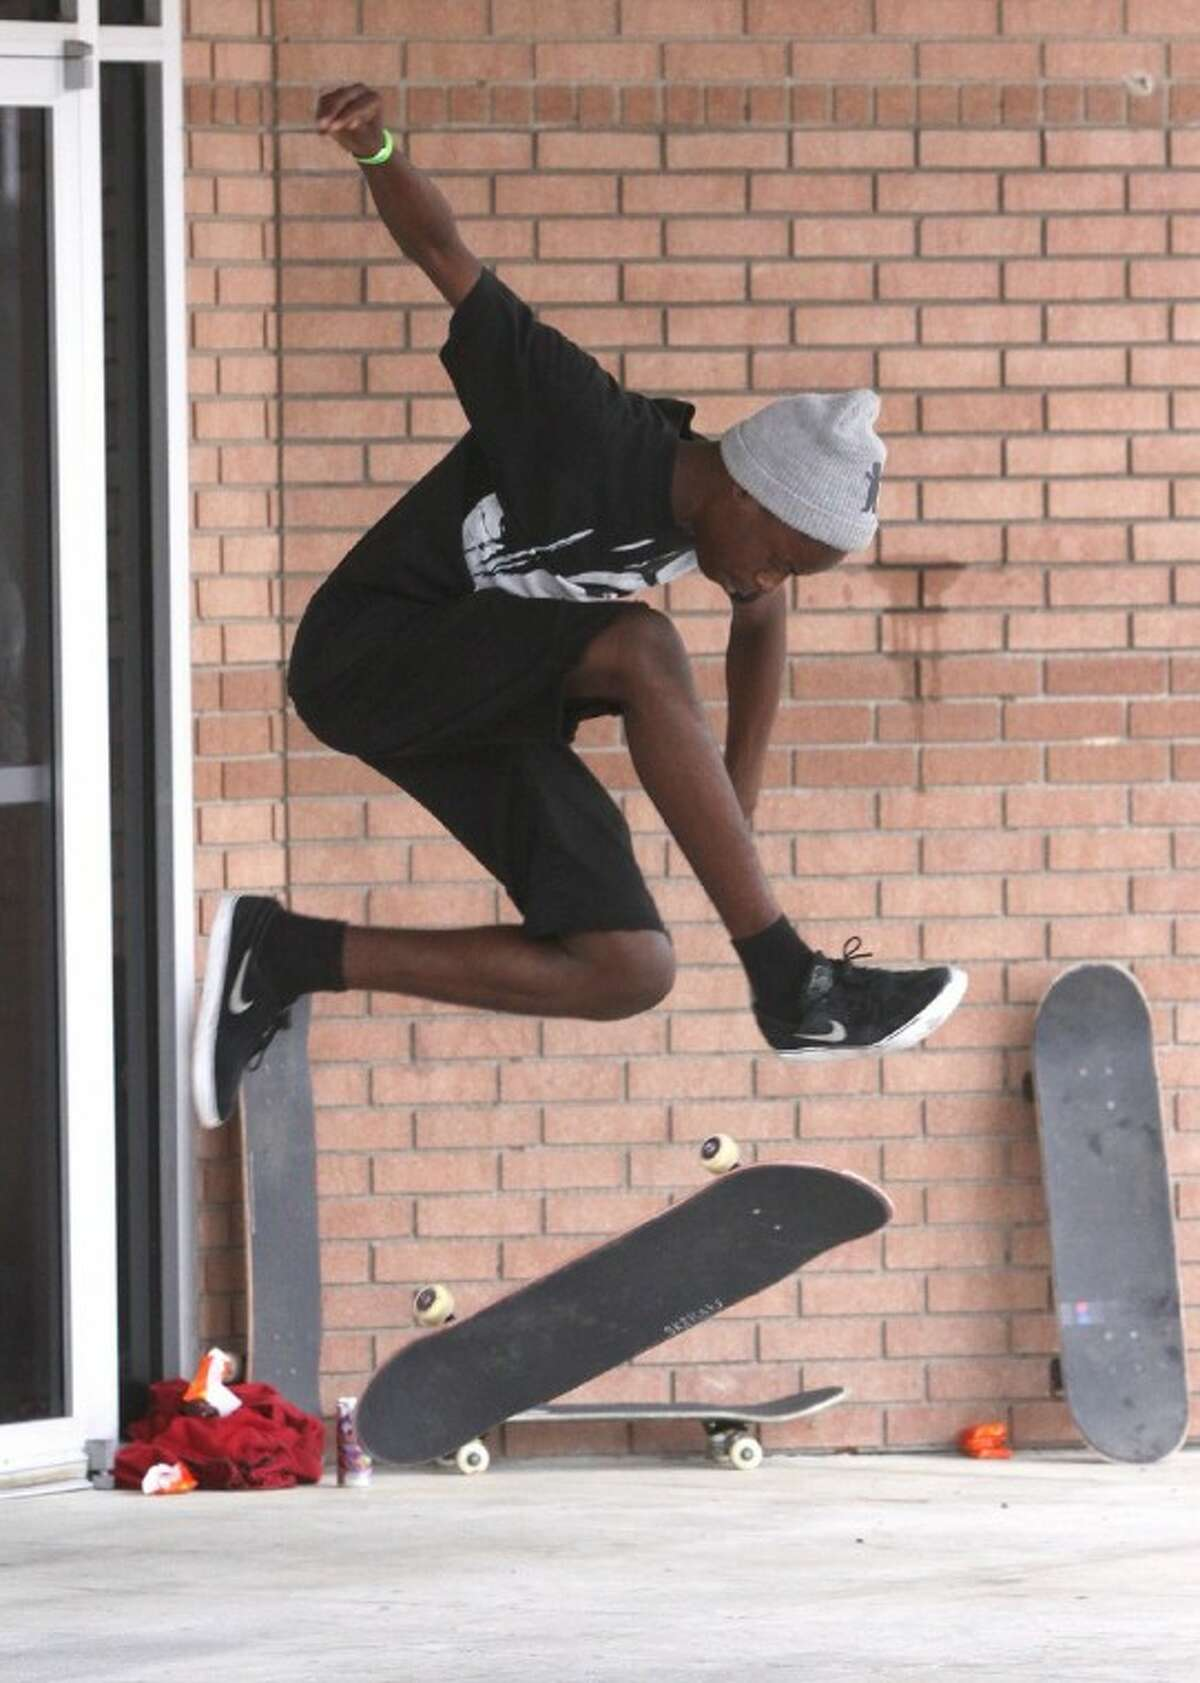 Kevin Storm 14, practices his moves while riding his skate board with the TruthRiders.